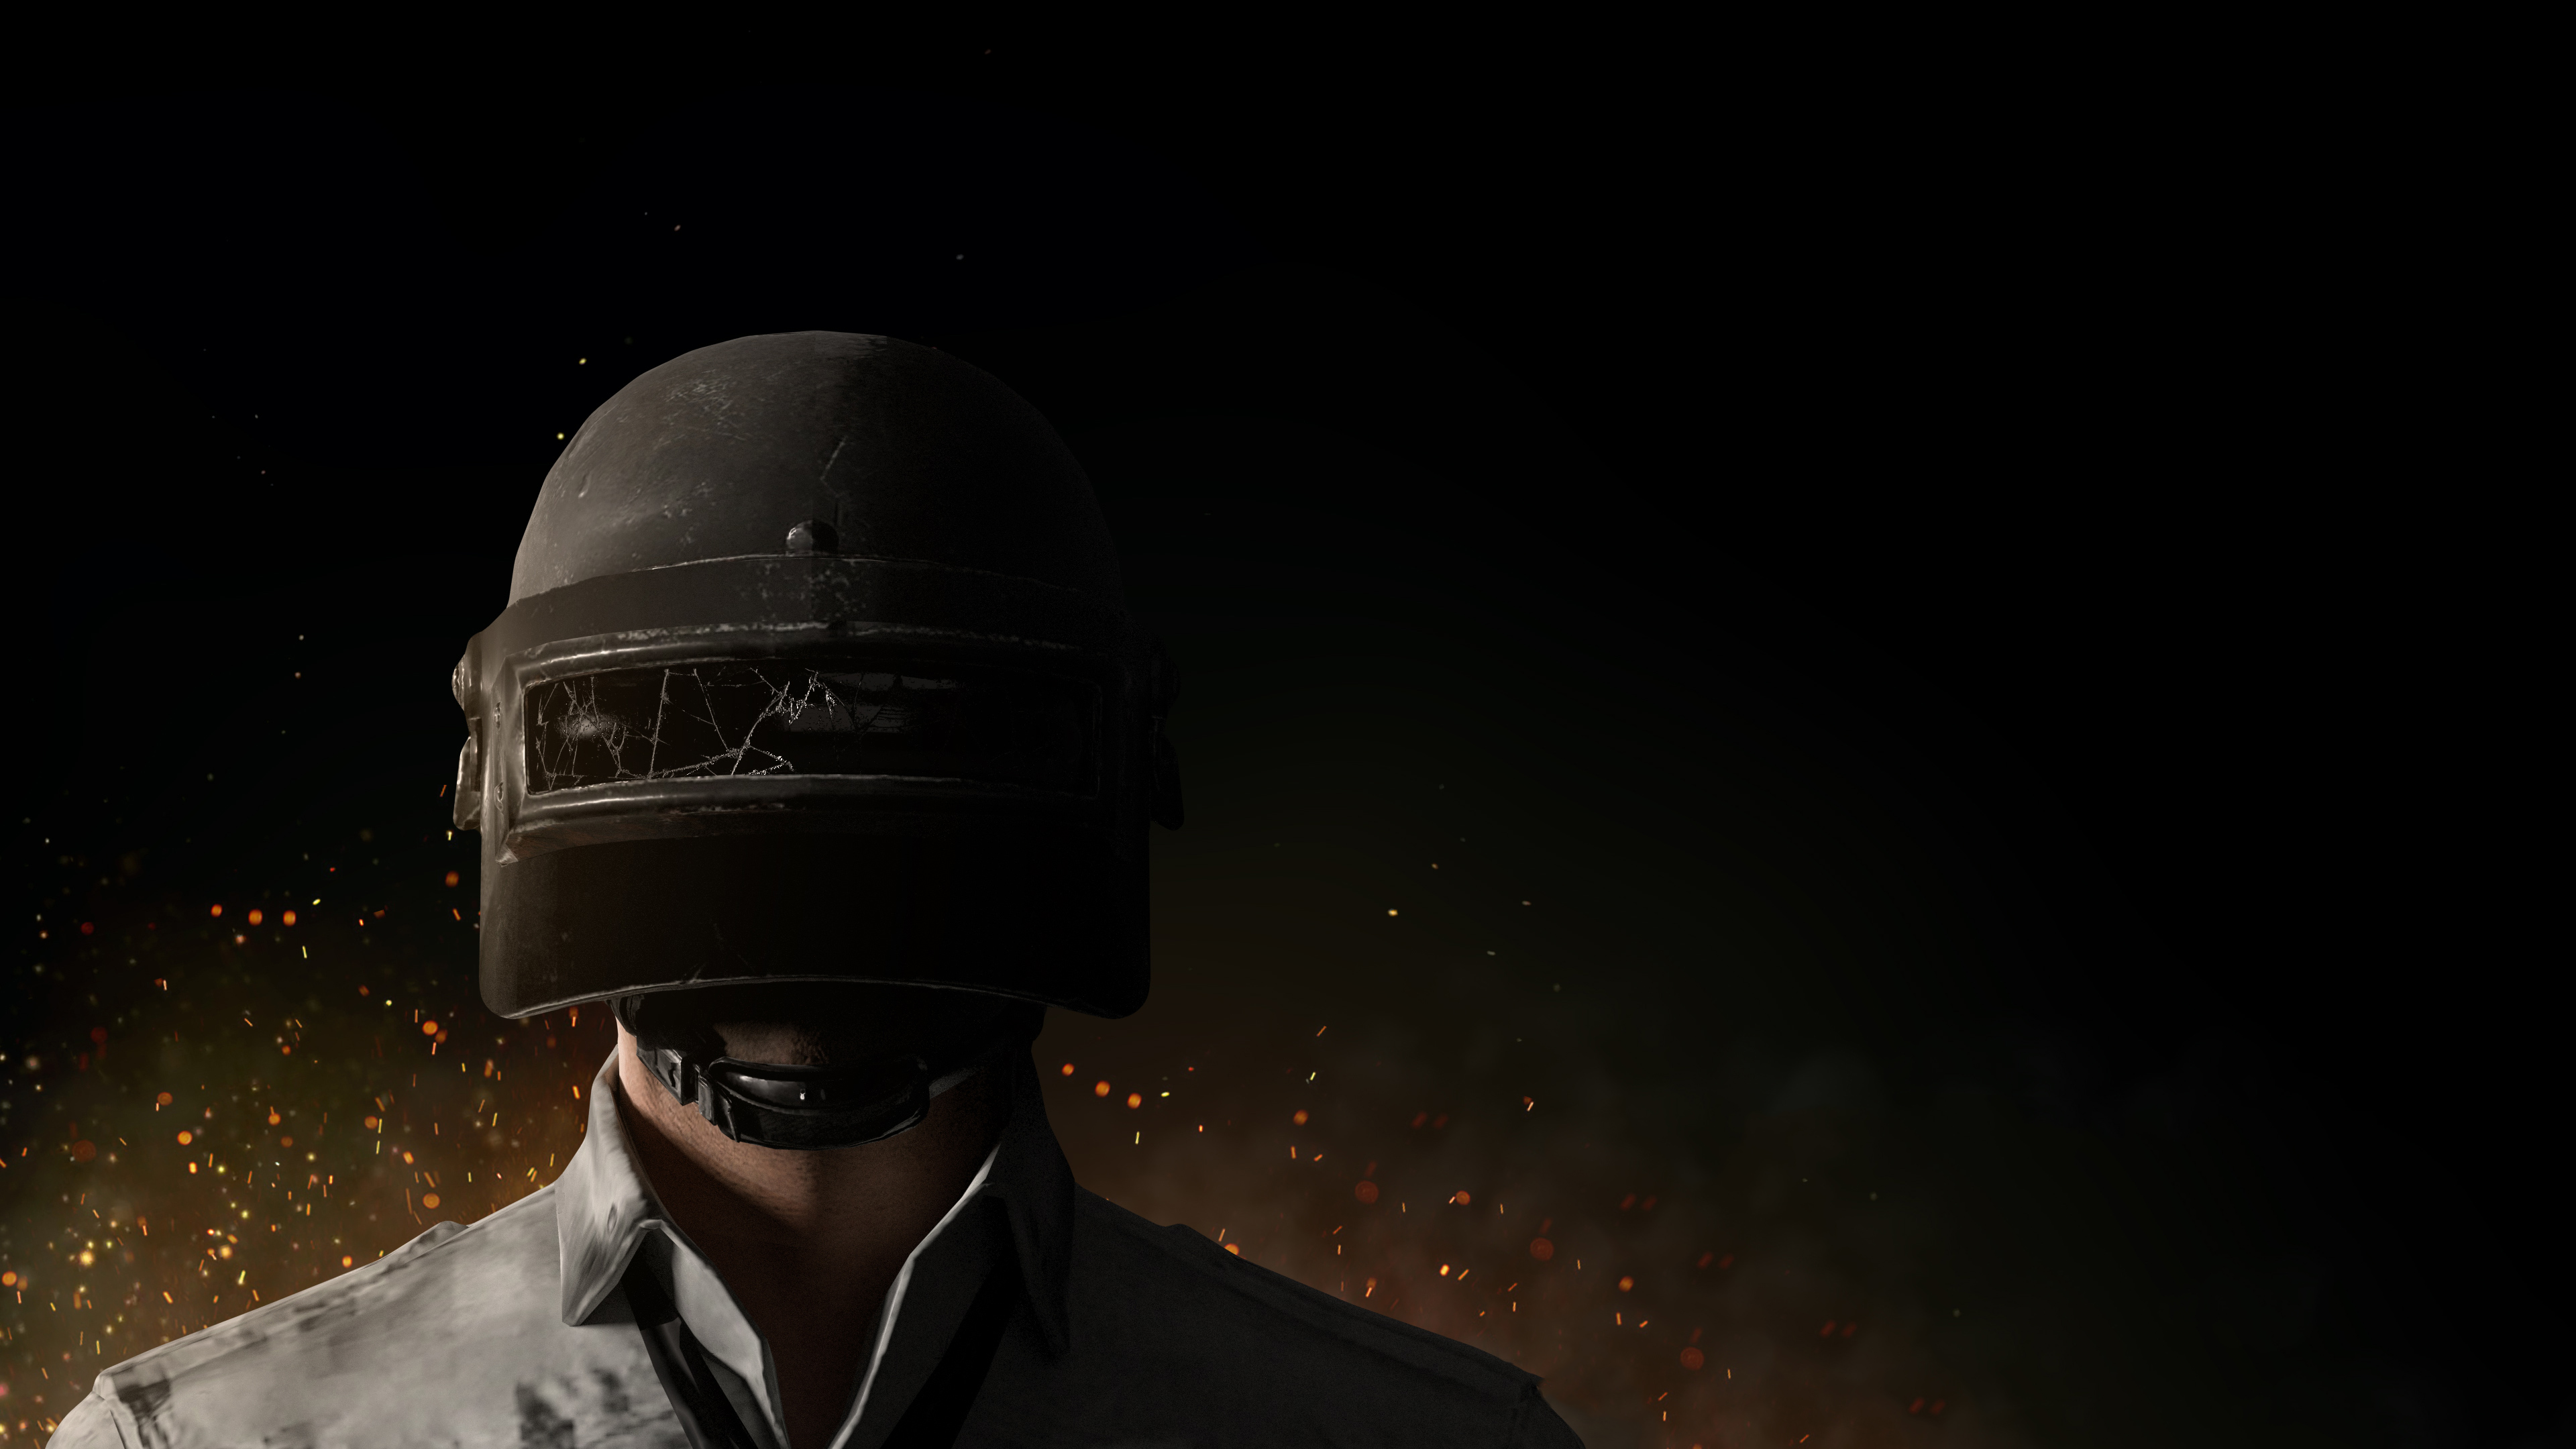 Pubg Mobile Helmet Wallpaper Pubg Pubgwallpapers: PUBG Helmet Guy 4k, HD Games, 4k Wallpapers, Images